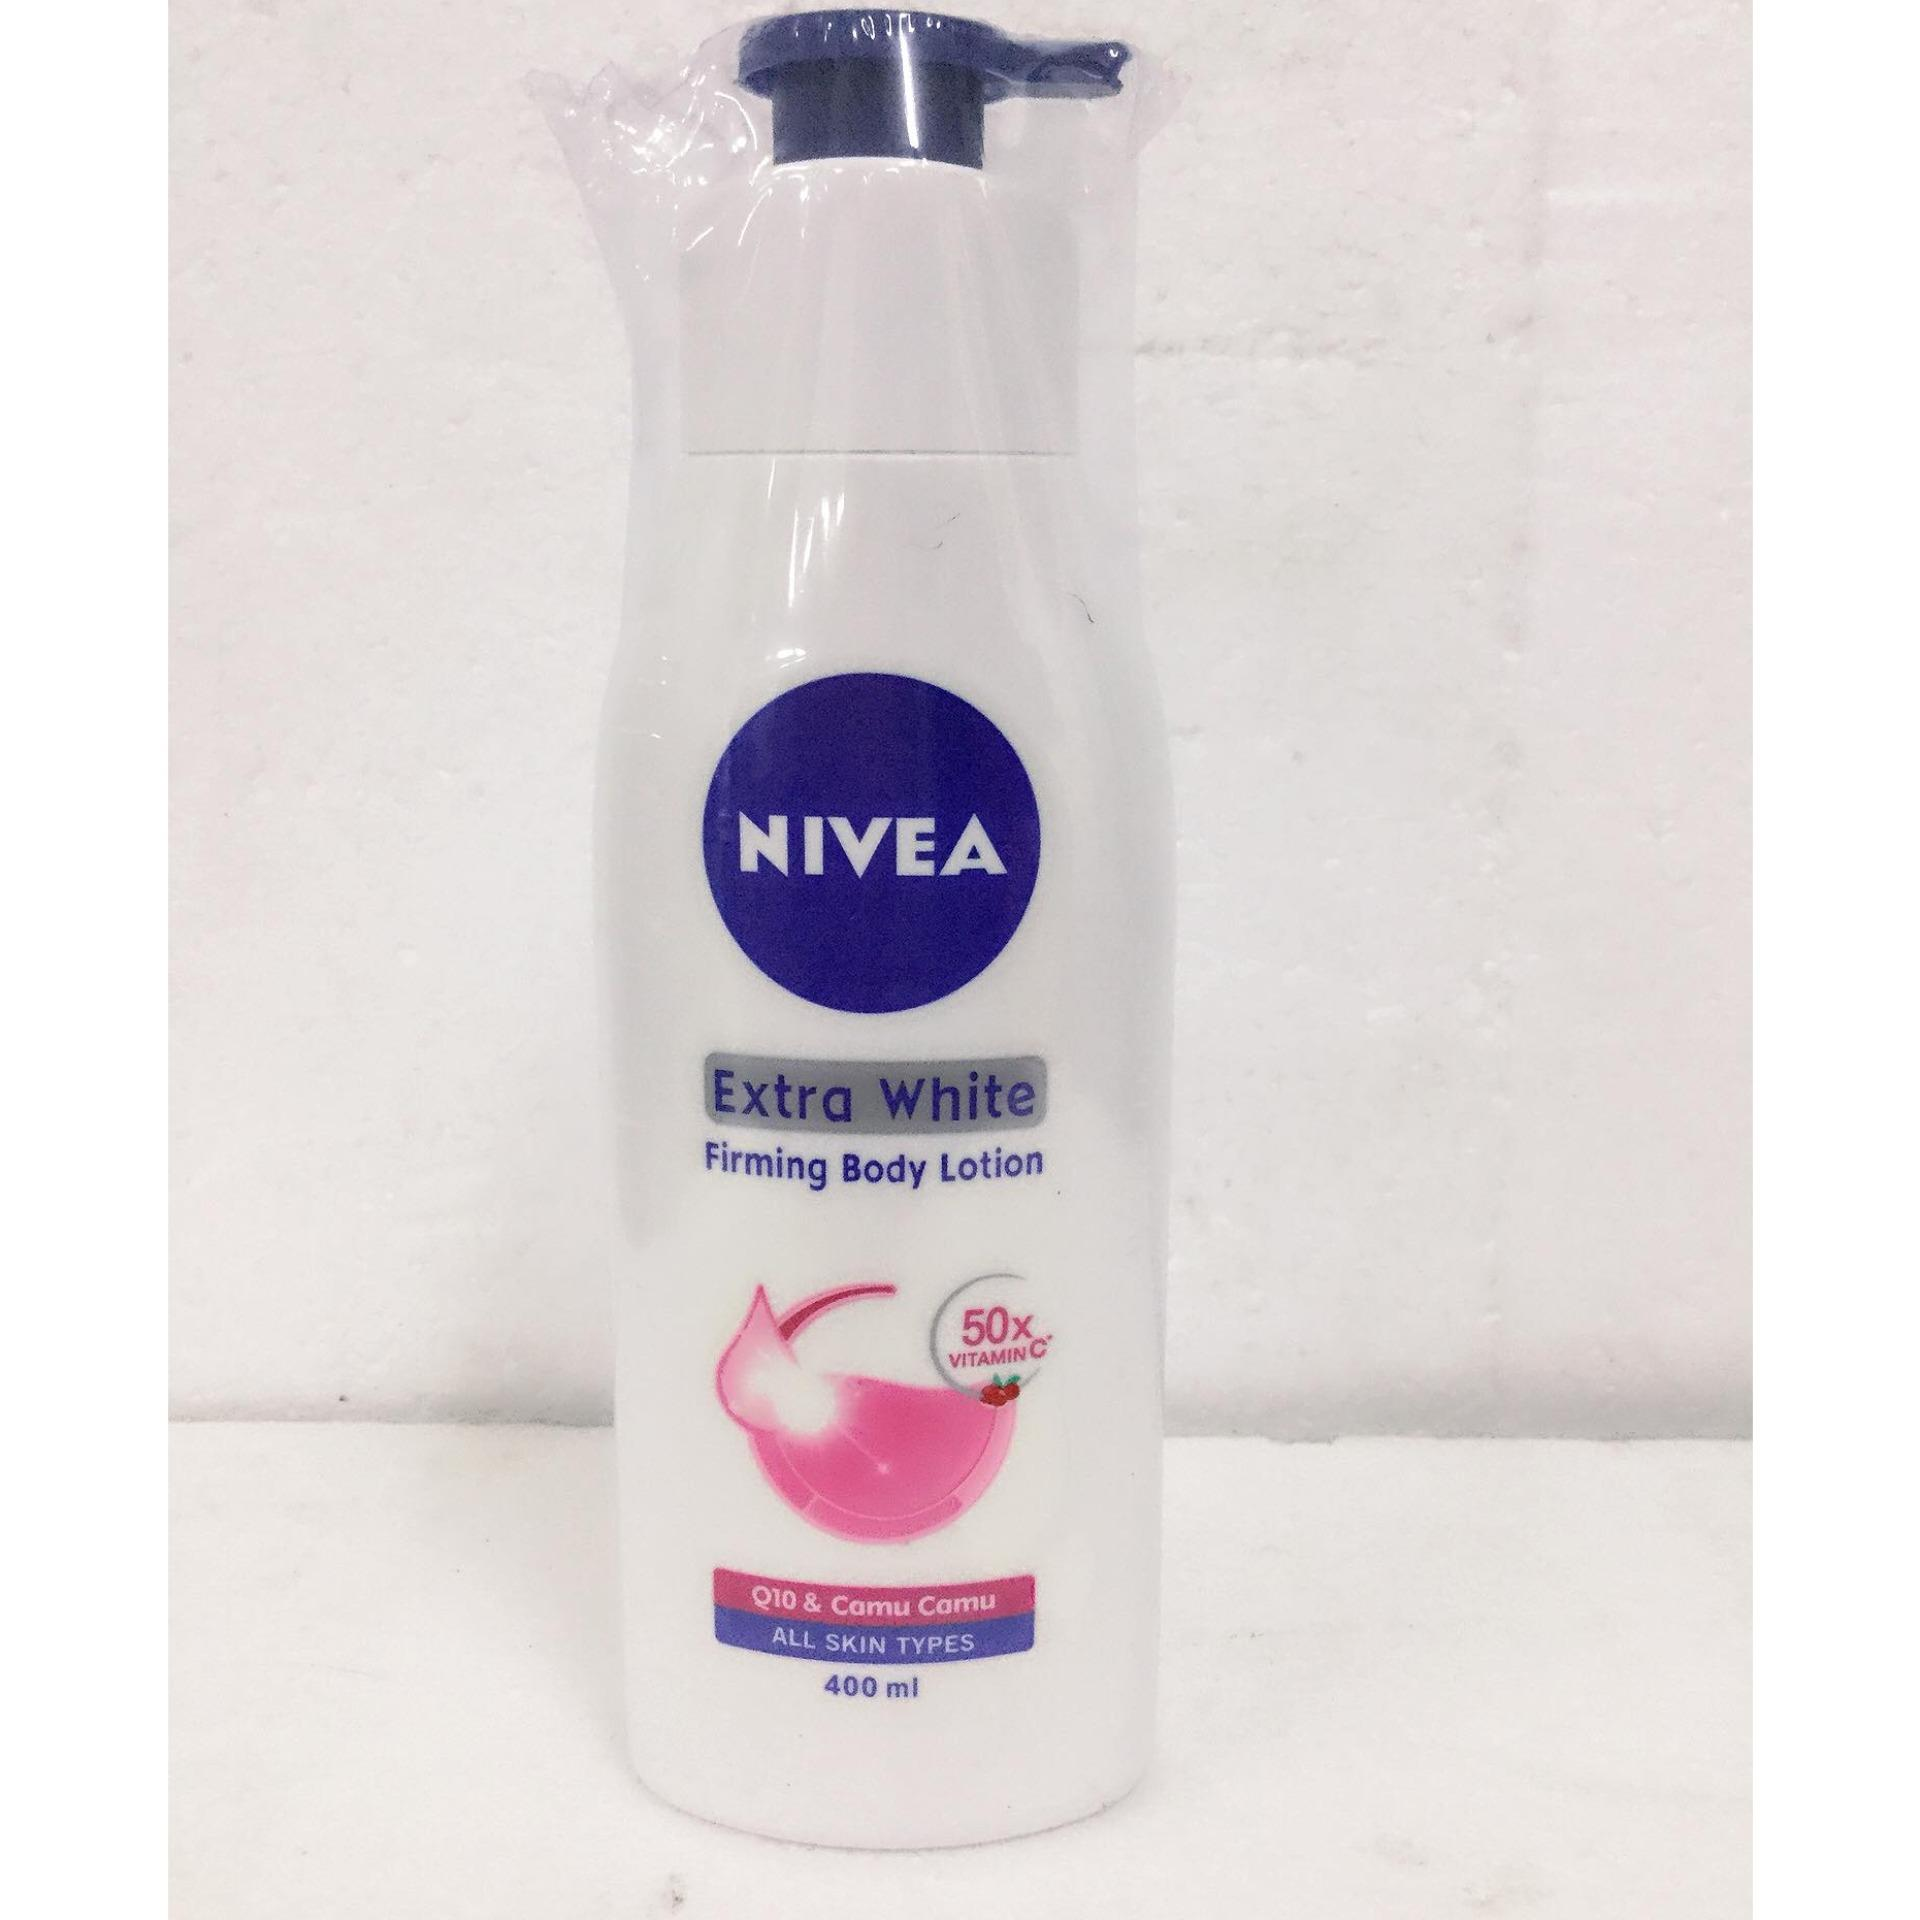 Buy Sell Cheapest Nivea Nvs Extra Best Quality Product Deals Body Lotion White Firm Smooth 200ml Whitening 400ml